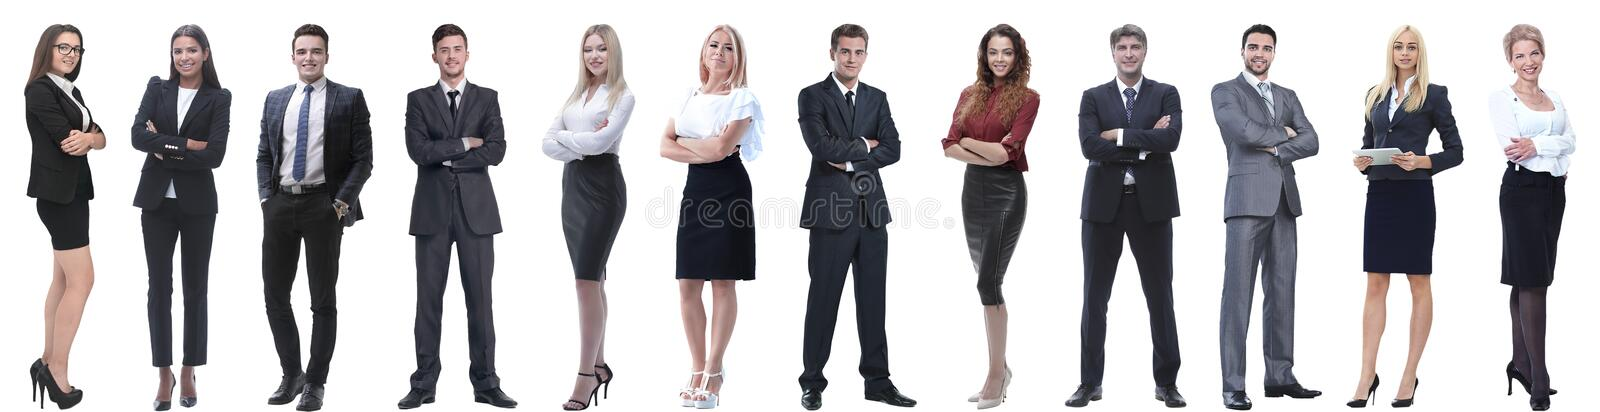 Group of successful business people isolated on white stock photo